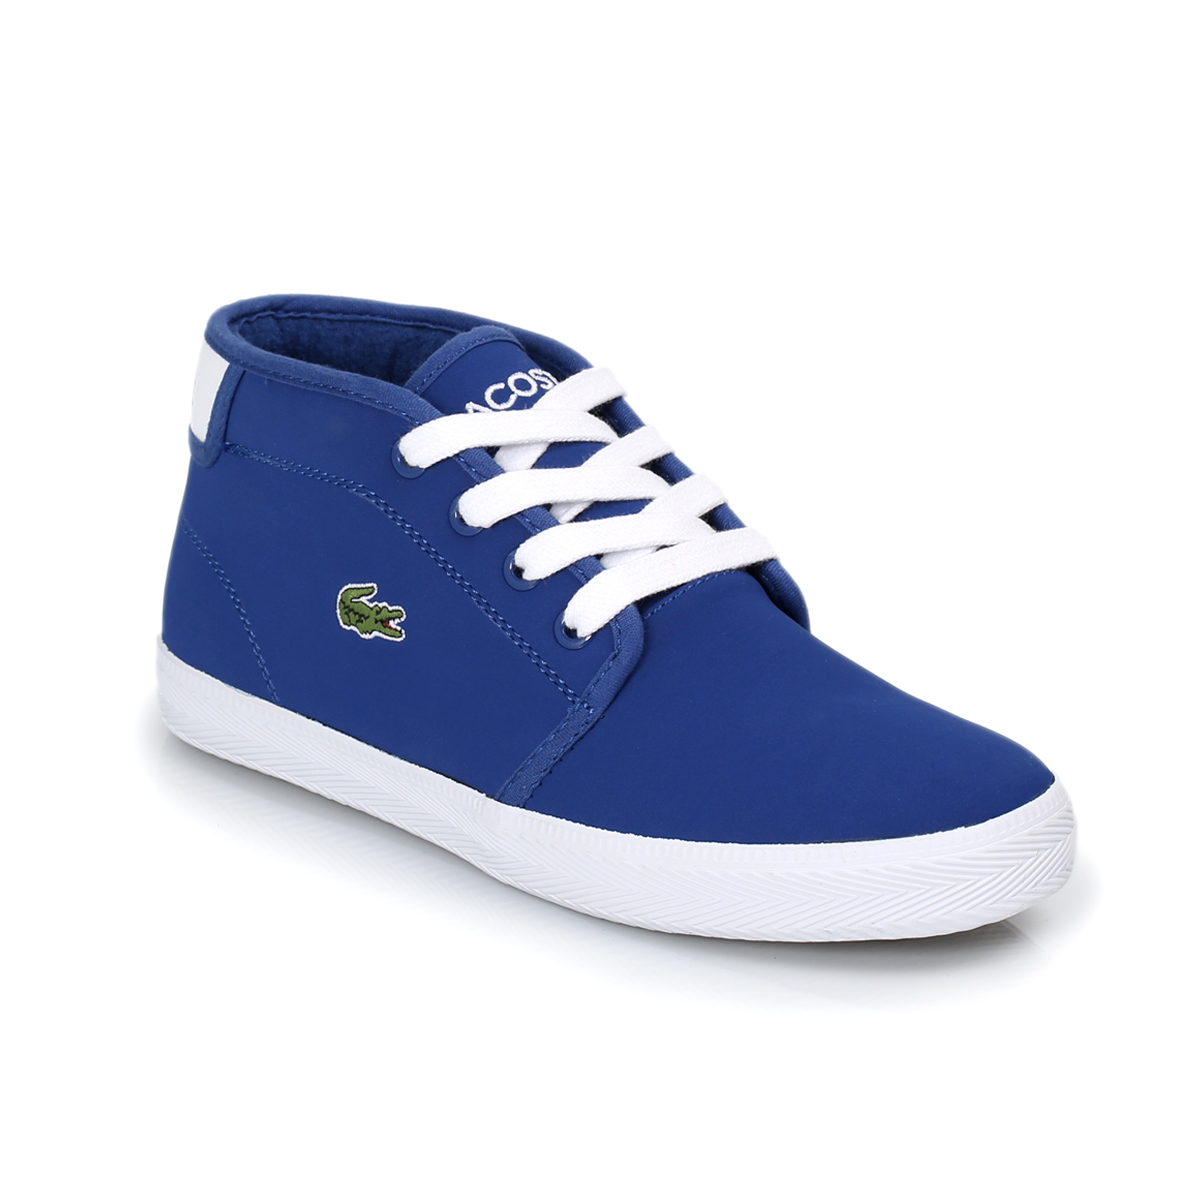 lacoste ampthill blue white kids trainers sneakers shoes